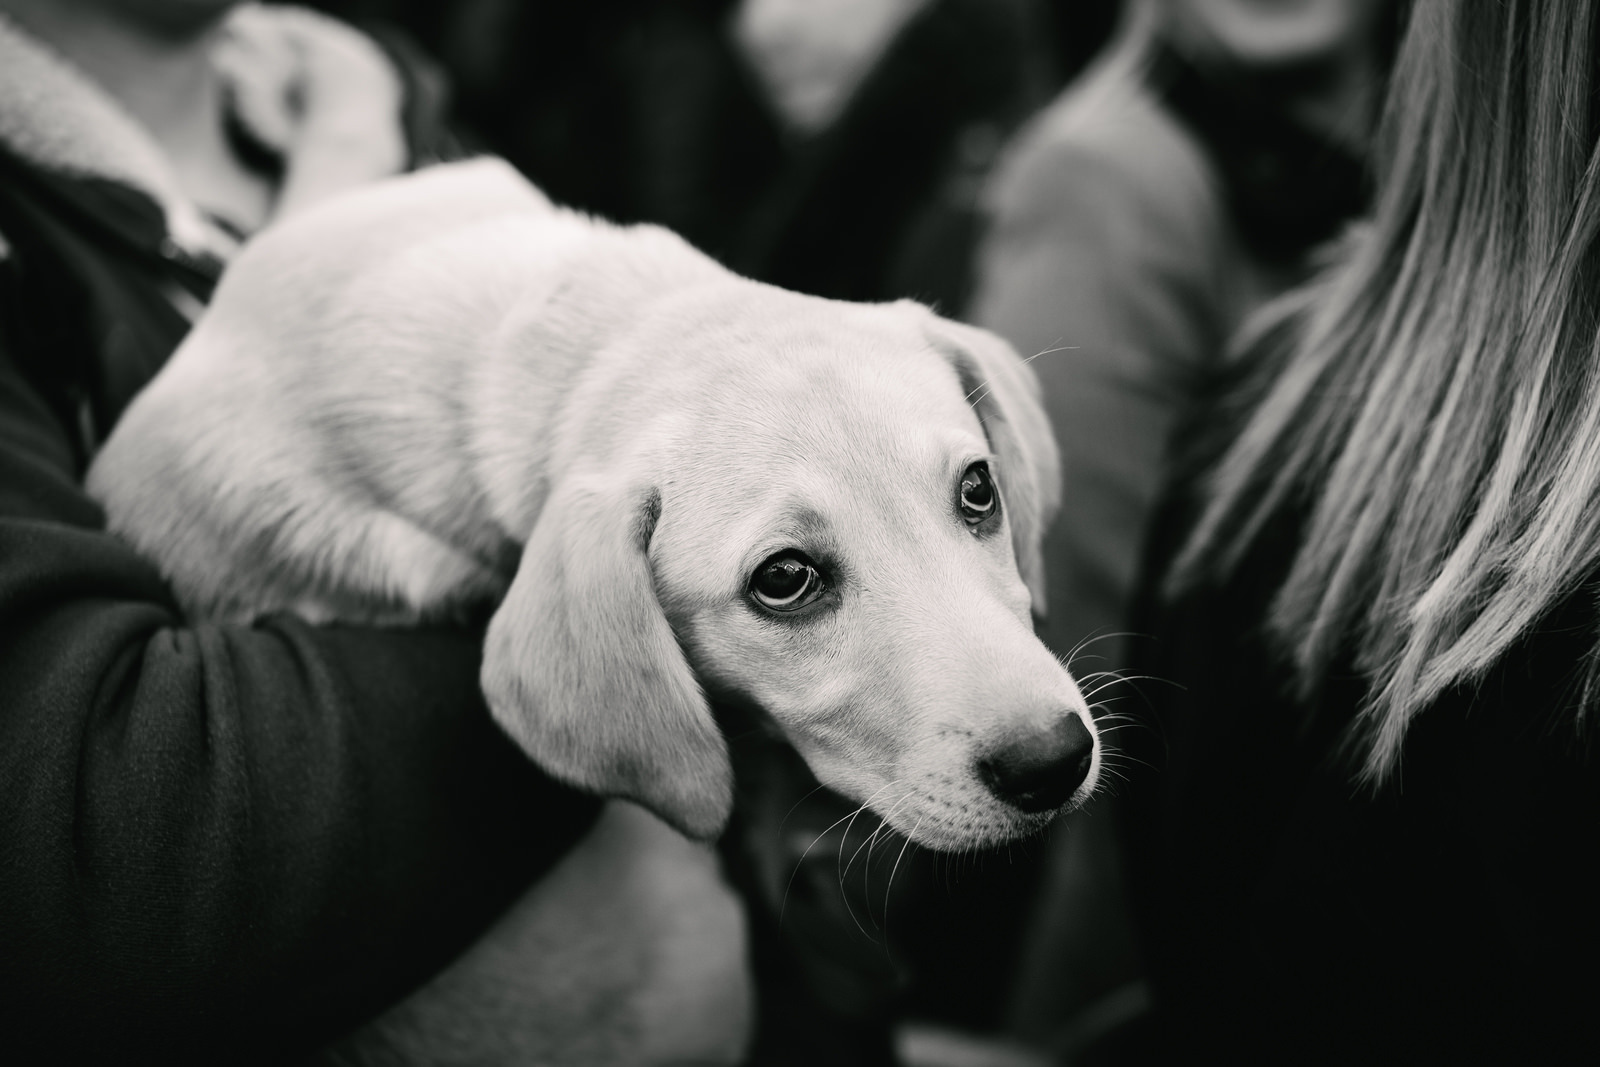 A puppy with sad eyes in London